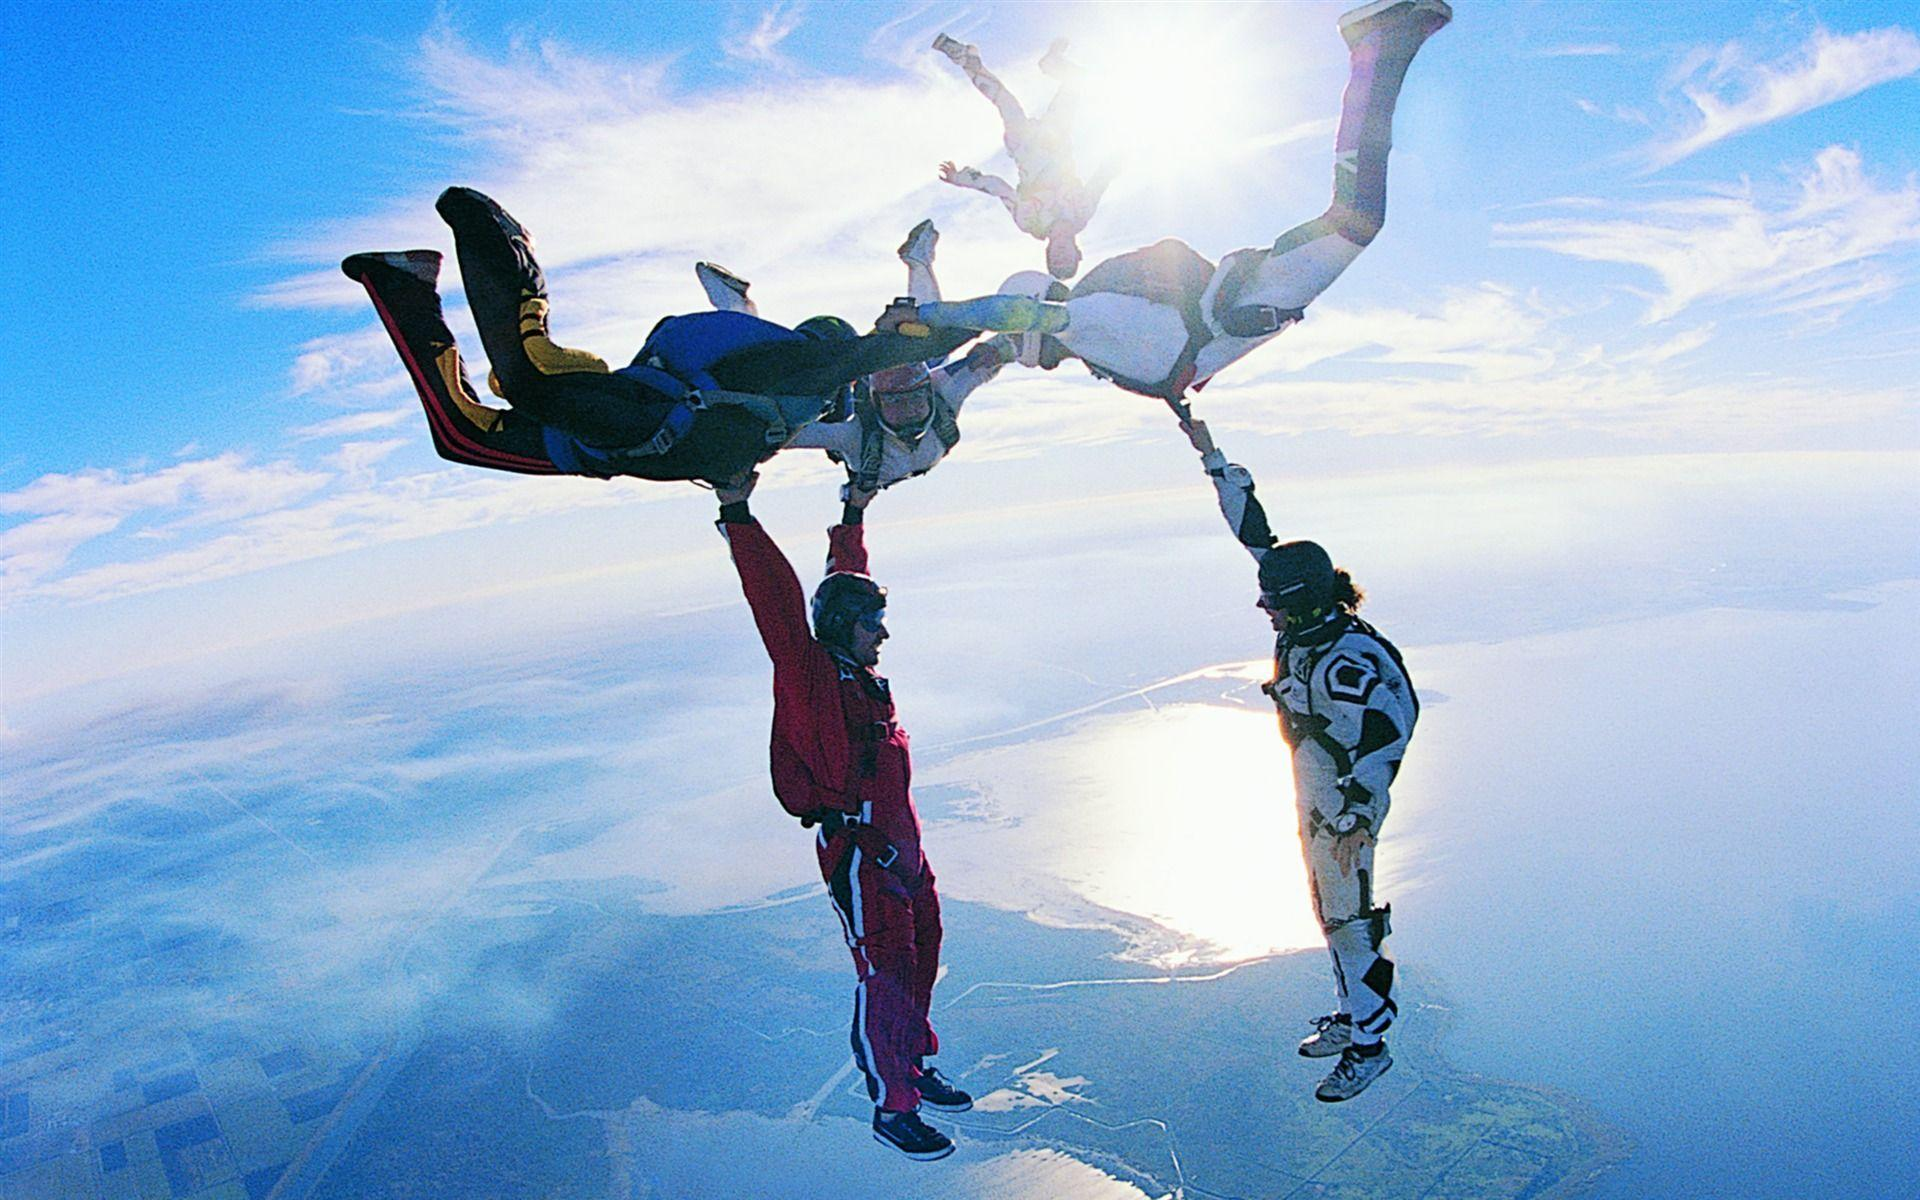 amazing extreme sports skydiving clouds sky above wallpapers star sport diving 4k skydive uhd funny jump travel resolution paracaidismo desktop